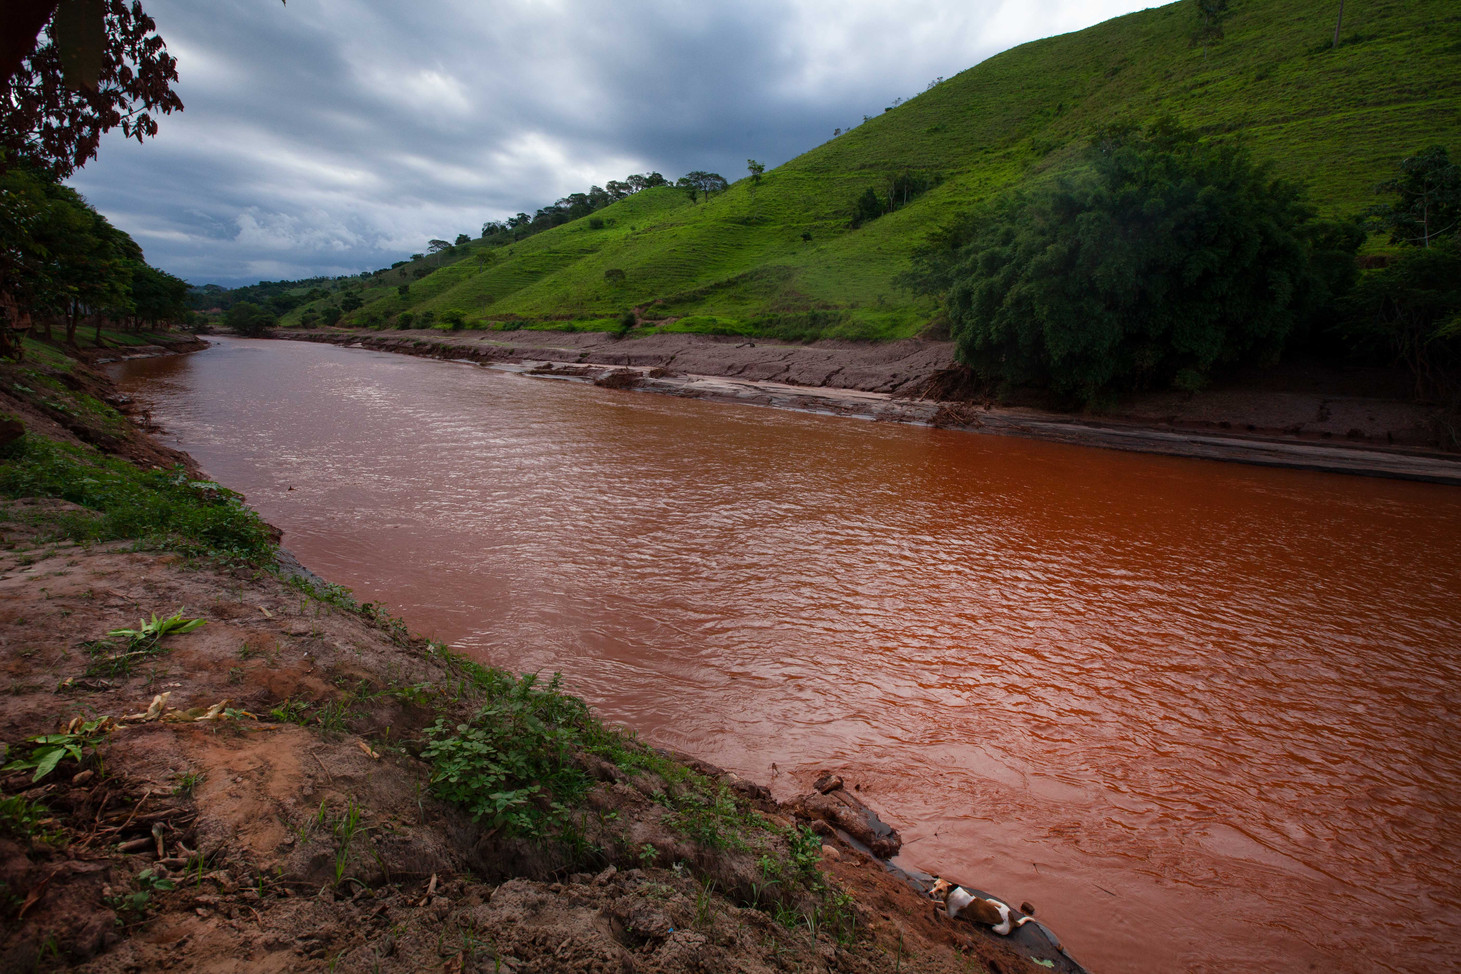 Mercury and Arsin now pollute the rivers. In the small town of Barra Longa, the Rio Do Carmo is a tributary that flows into the Rio Doce.